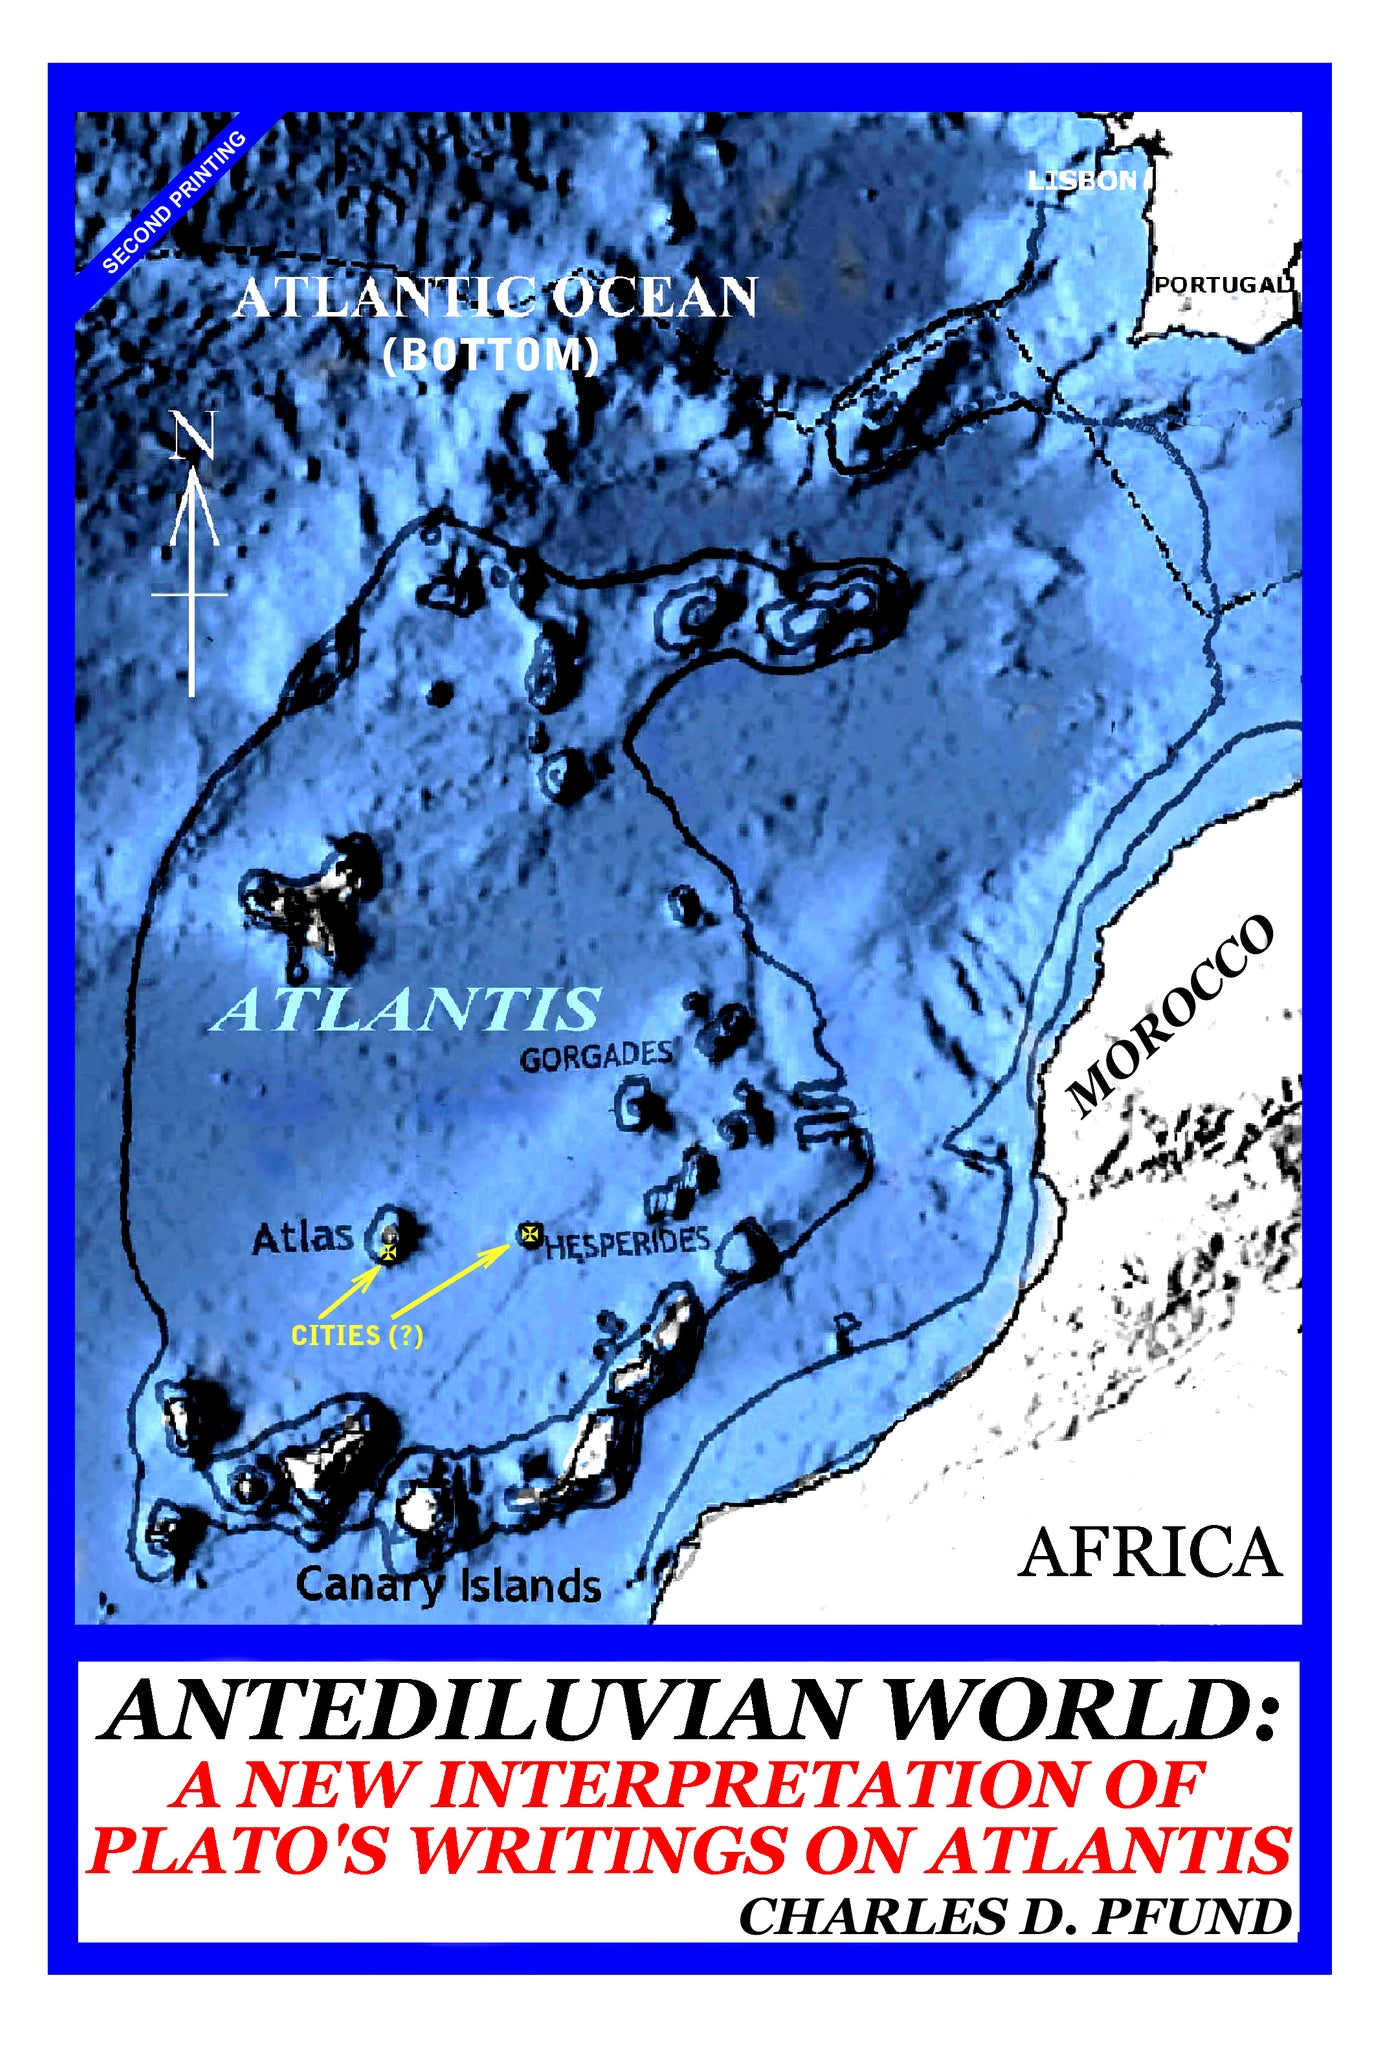 Antediluvian World - A New Interpretation of Plato's Writings on Atlantis